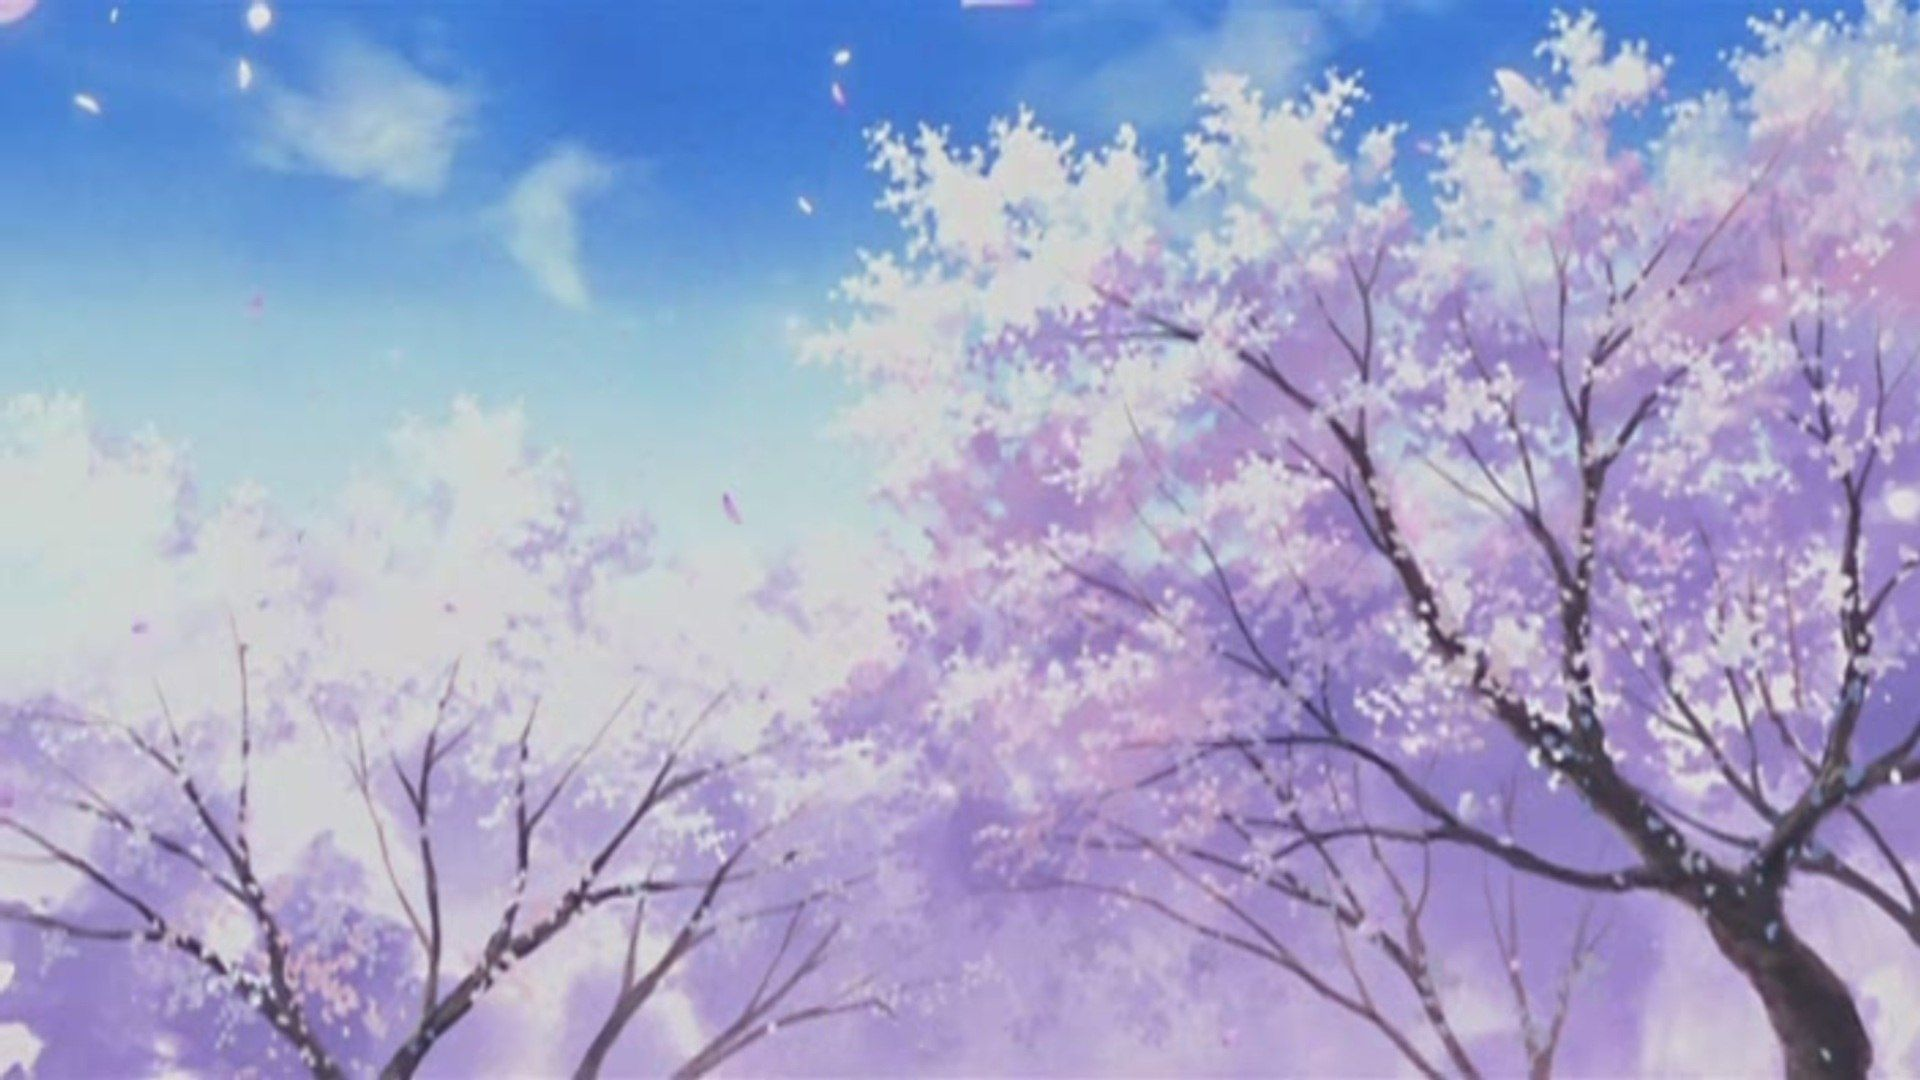 Anime scenery wallpapers 1080p with hd wallpaper kemecer - Anime cherry blossom wallpaper ...